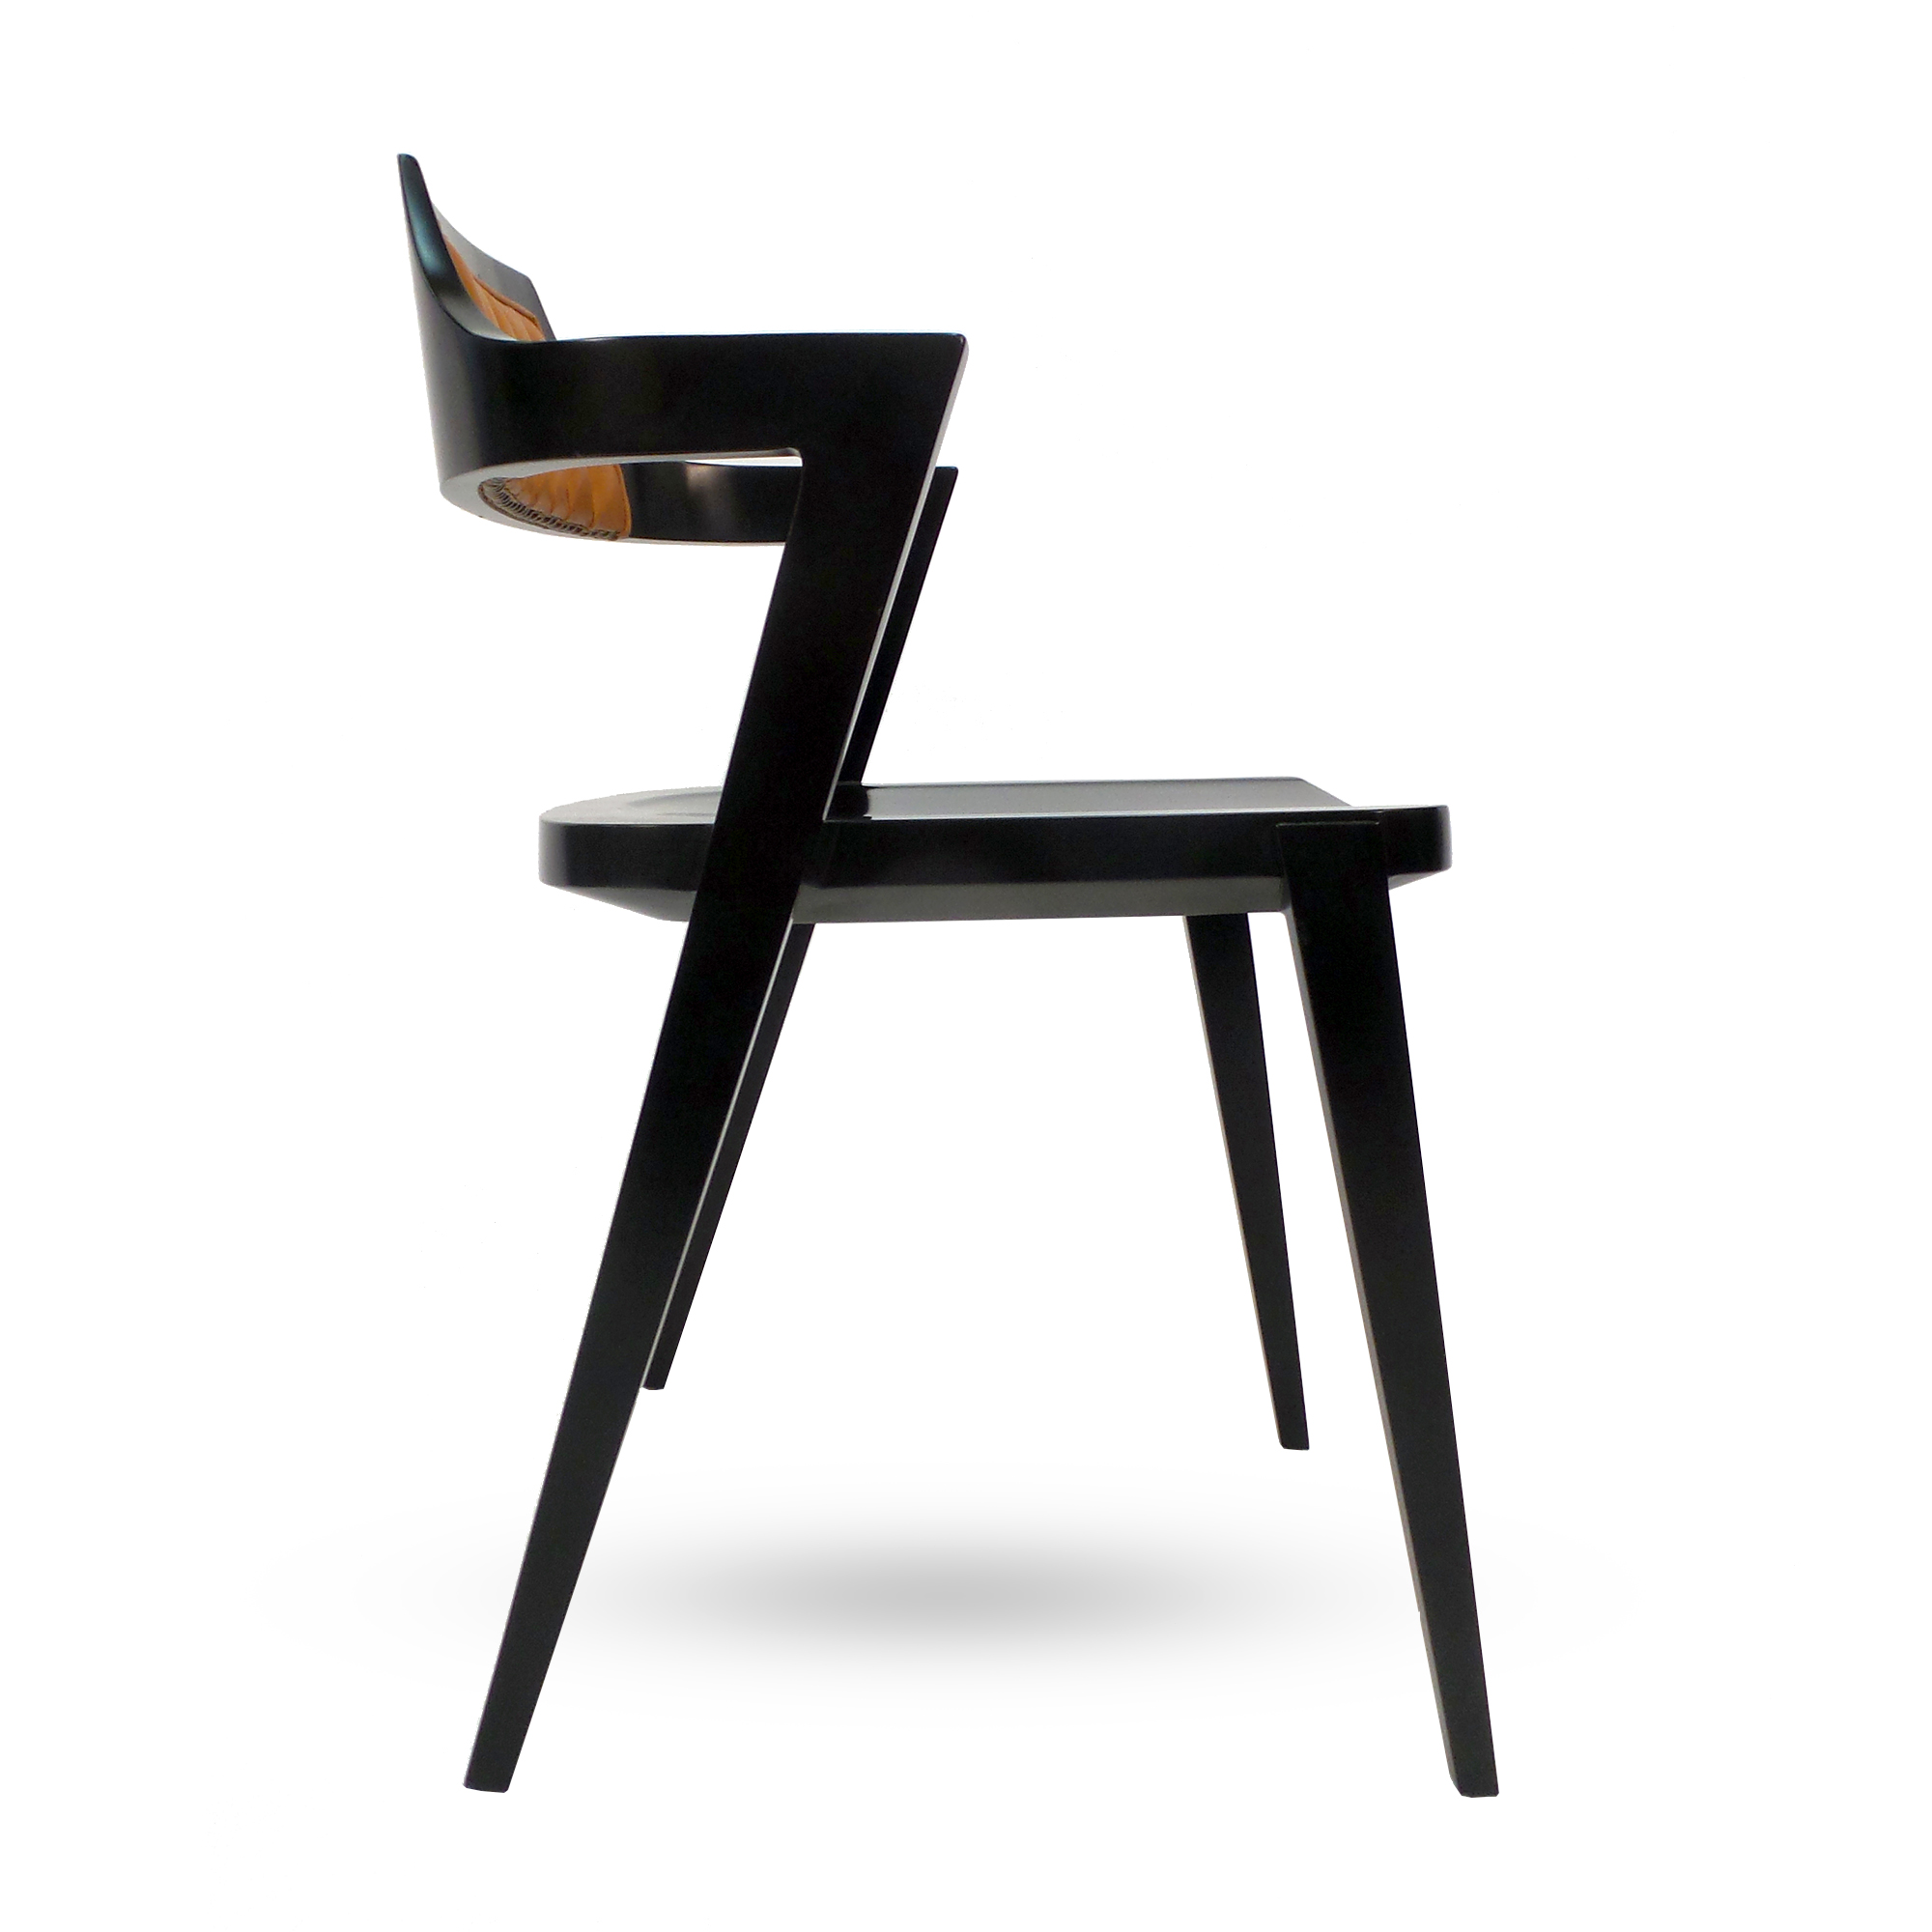 R813-Victoria-&-Son-stacking-chair-leather-lacquer-custom-modern-profile-sq.jpg